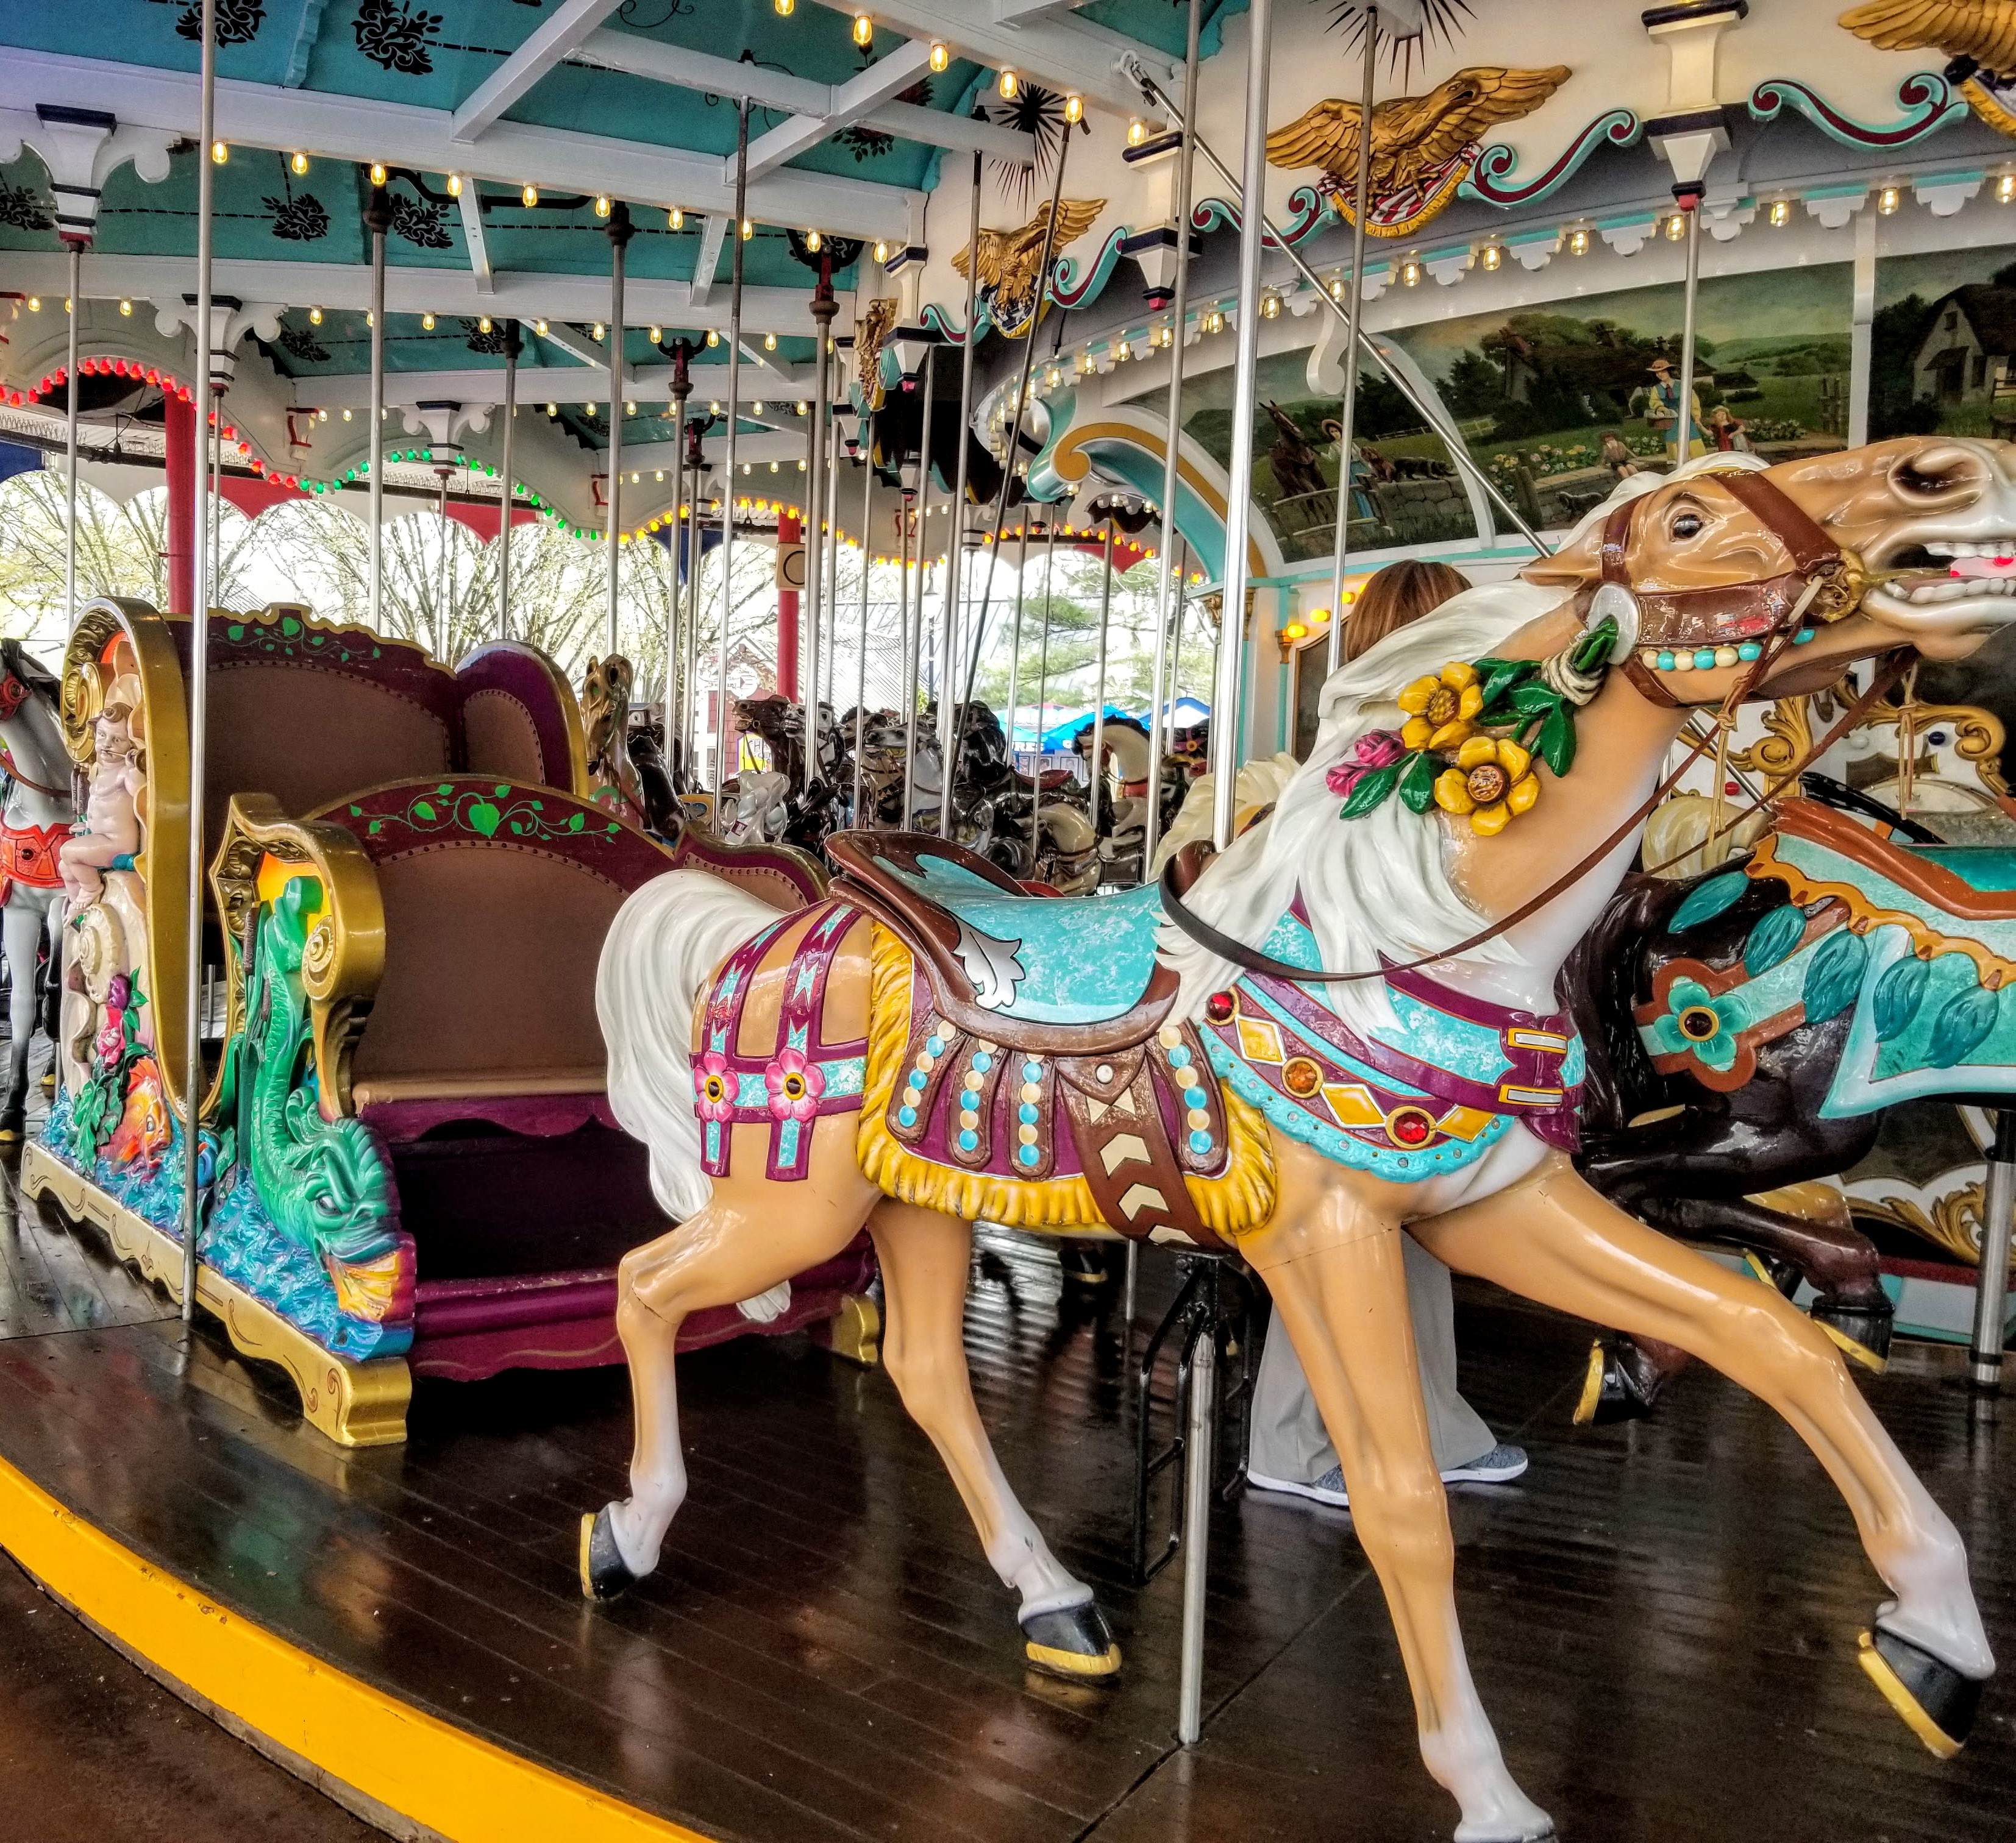 New and Fun Things To Do & Eat in HersheyPark- Hershey, Pa.? #SweetWelcome The HersheyPark Carrousel has an ADA approved horse and carriage.